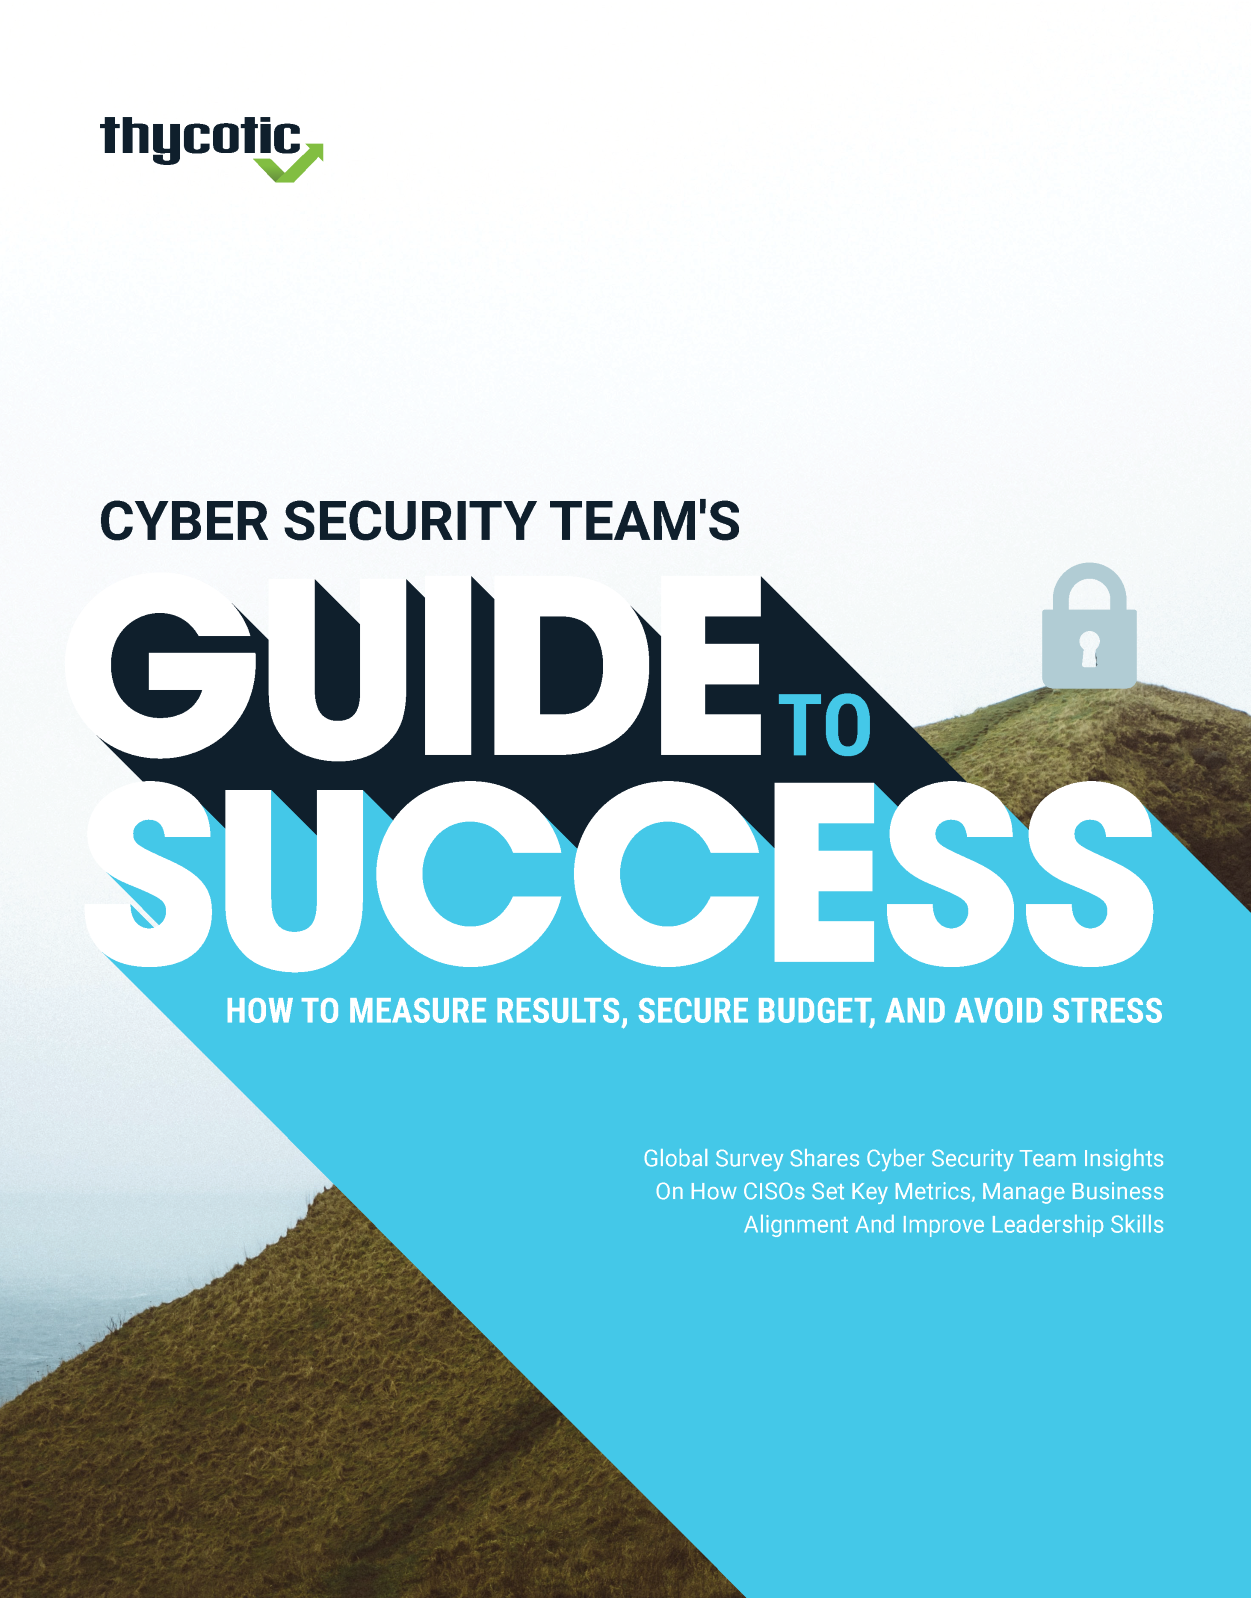 Cyber Security Teams Report